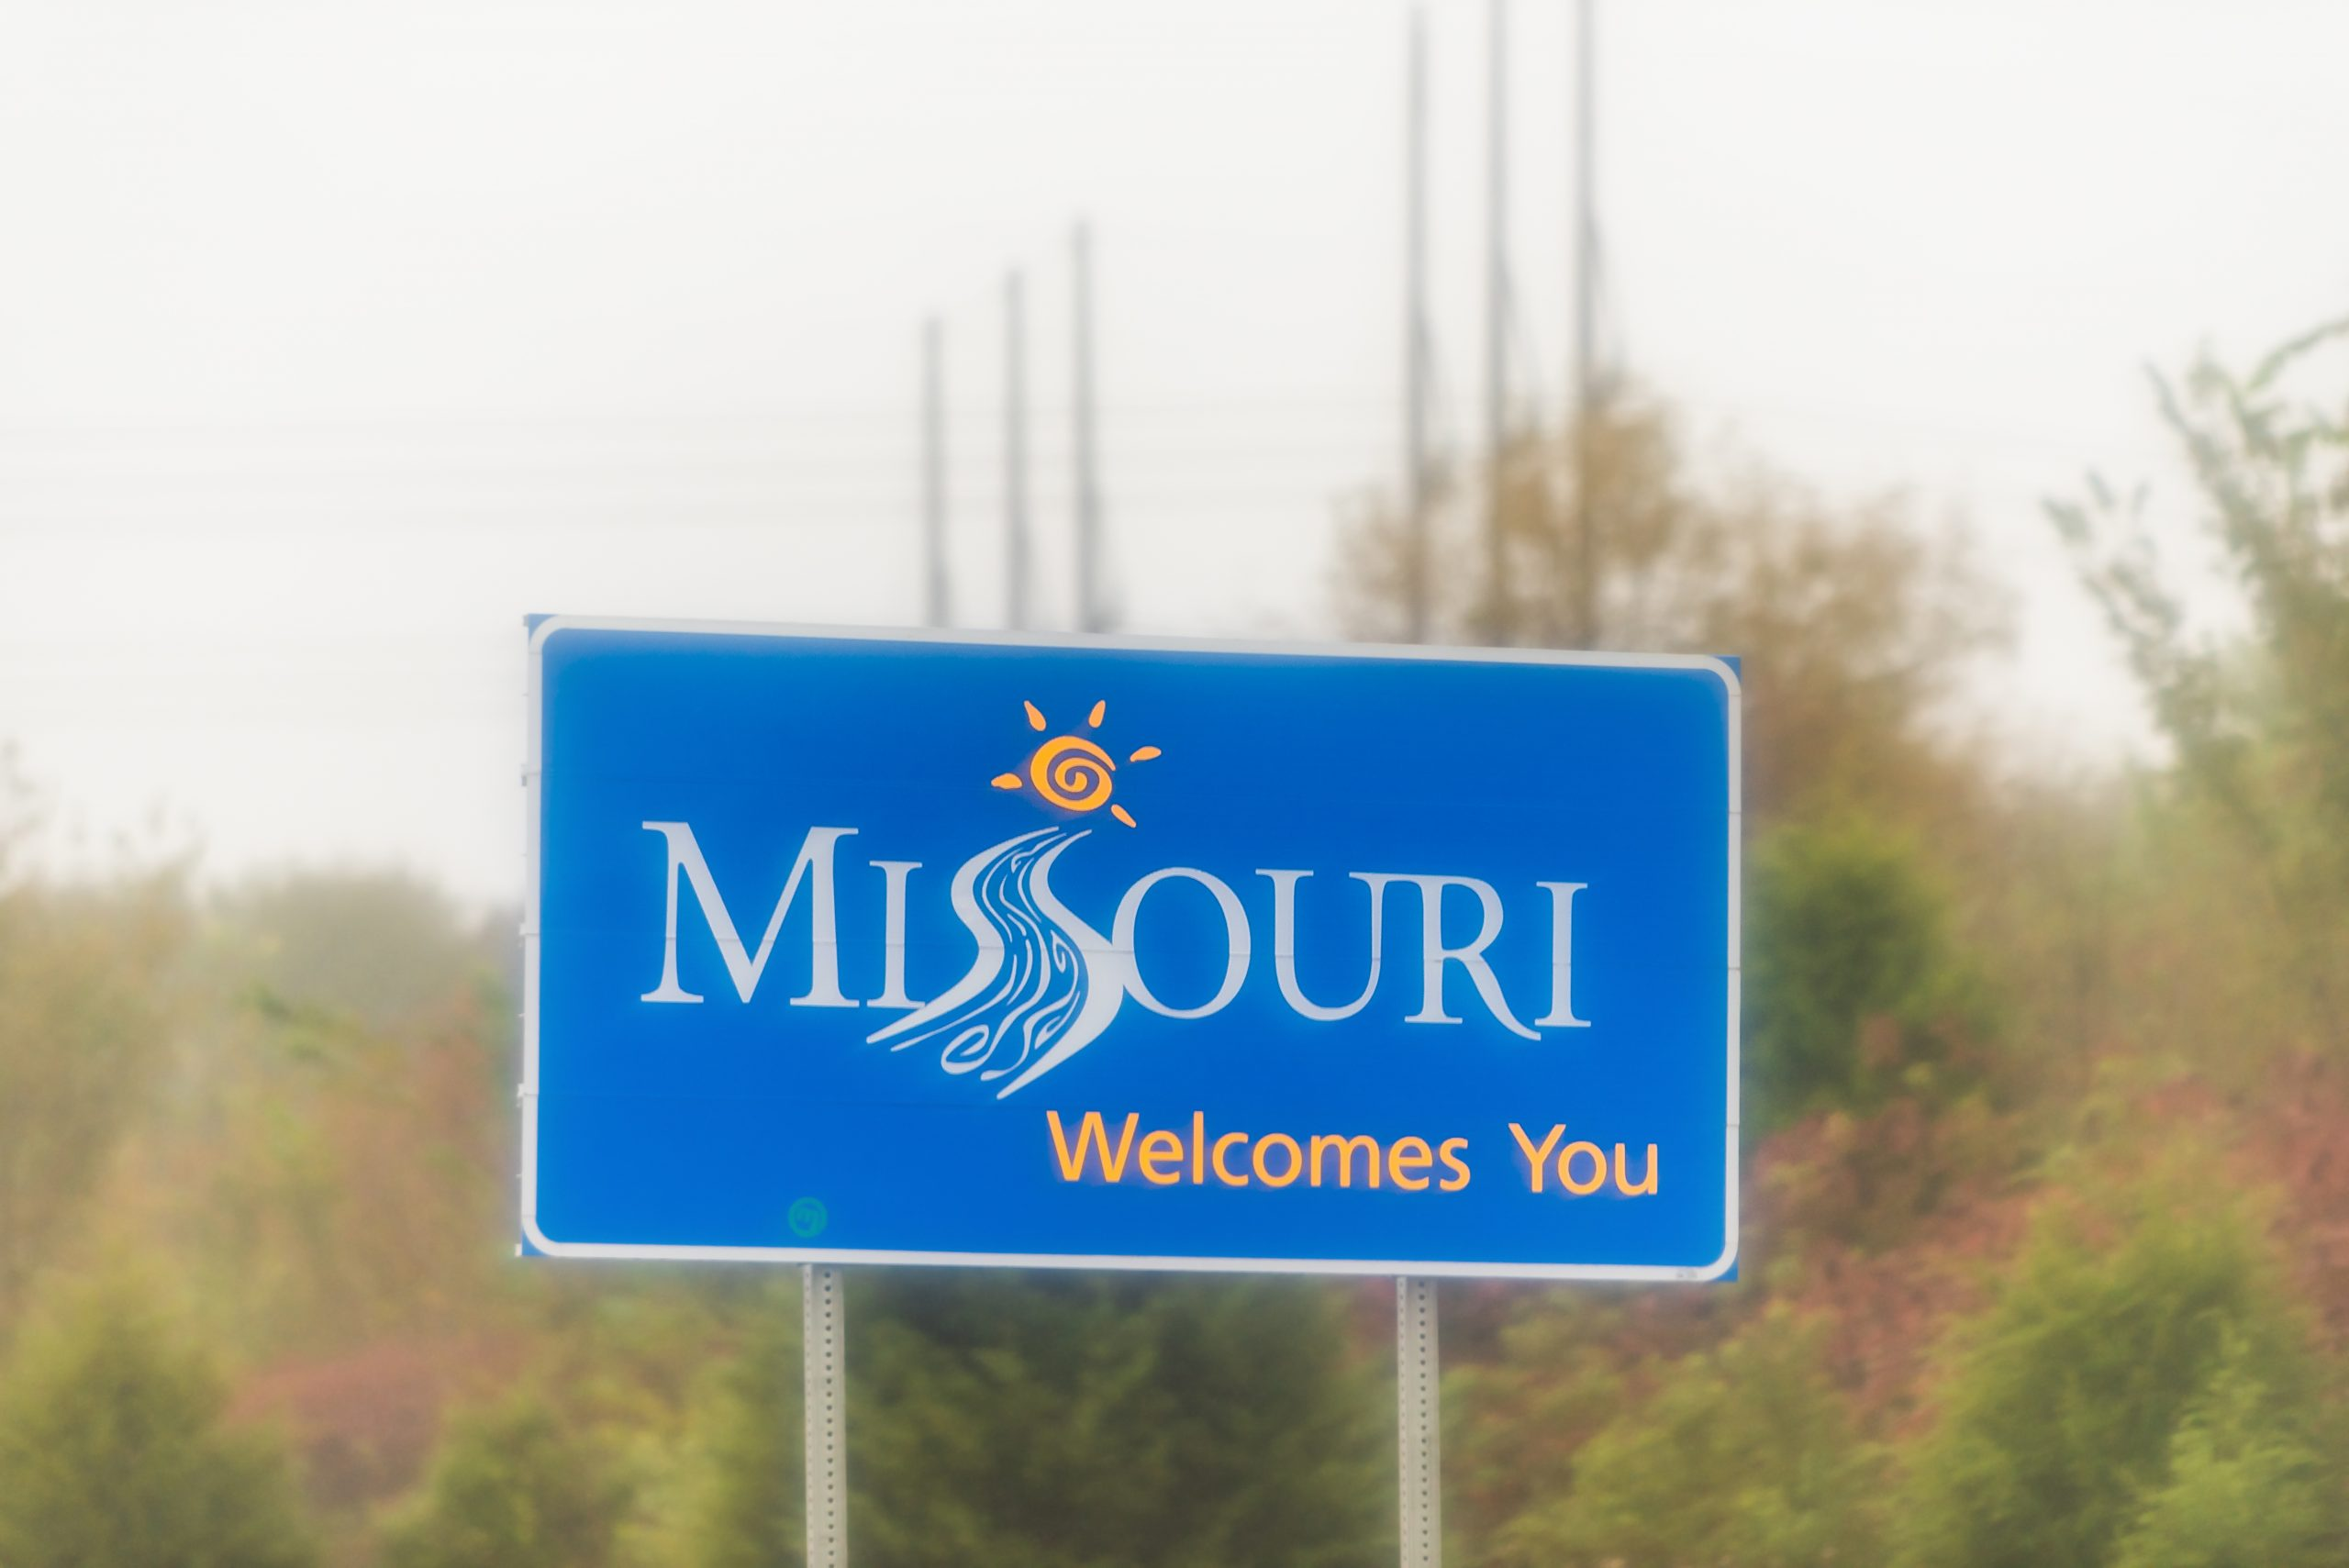 Welcome to Missouri sign